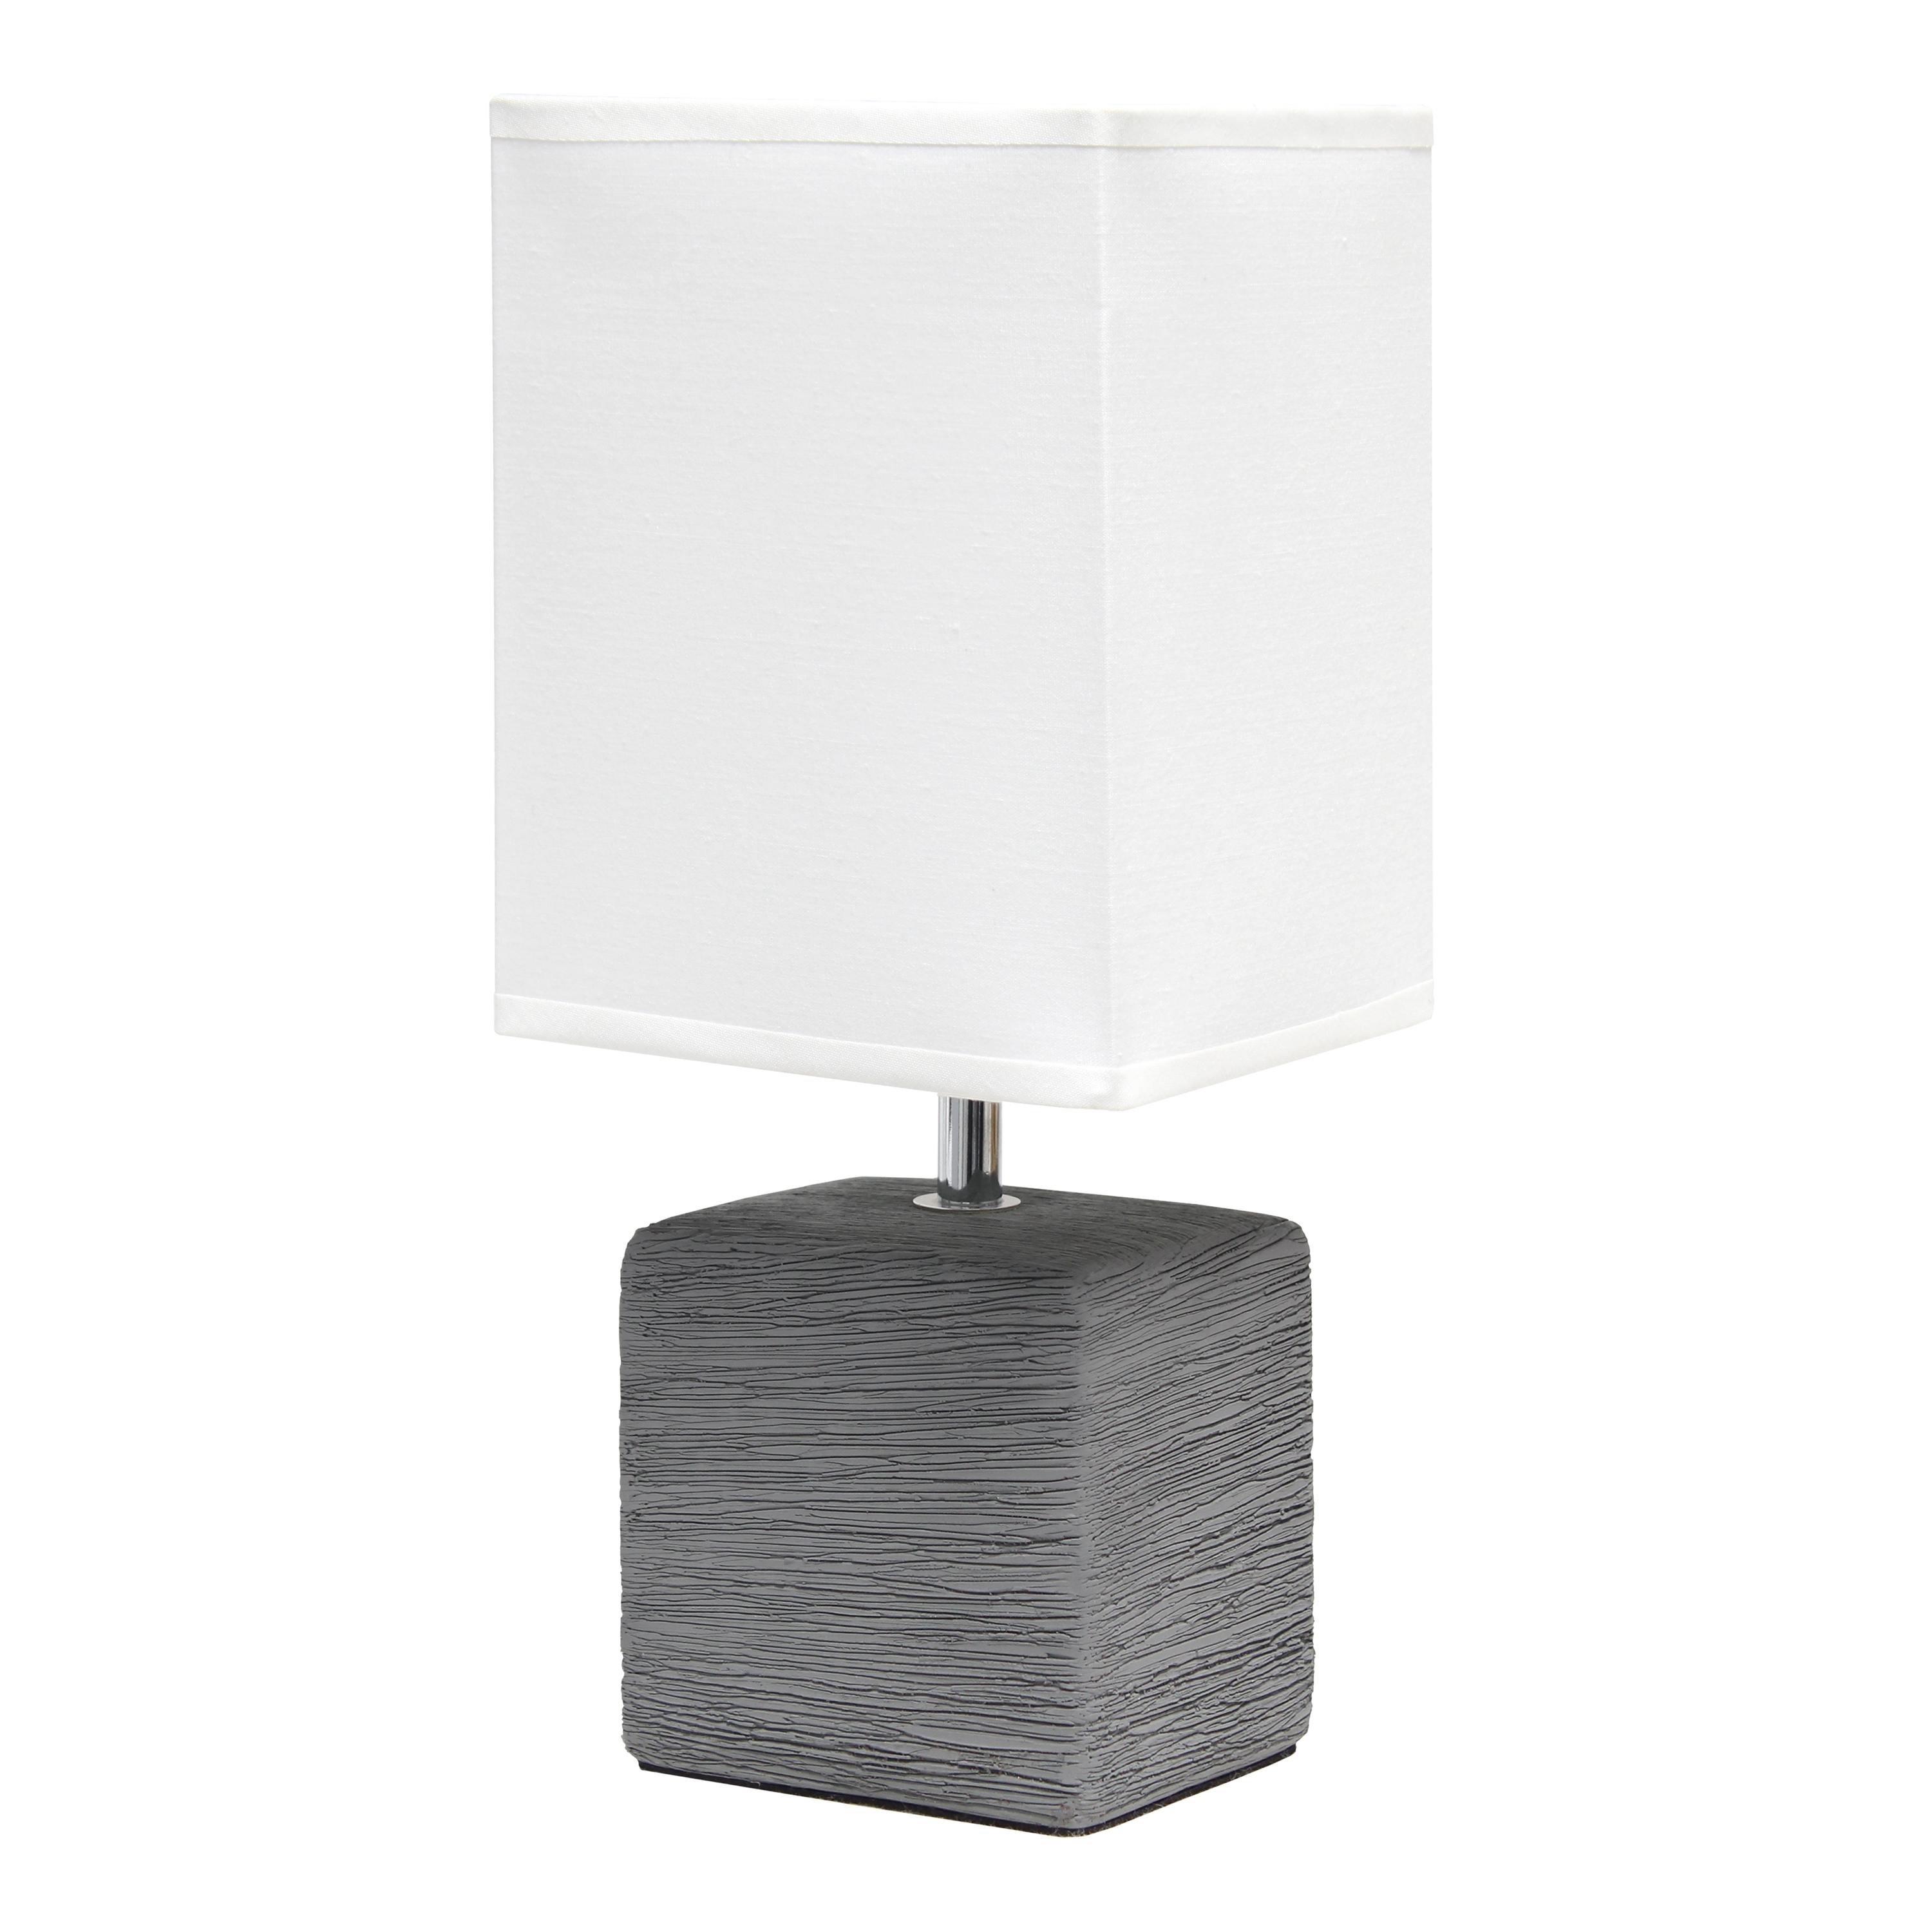 Simple Designs Petite Faux Stone Table Lamp with Fabric Shade, Gray with White Shade